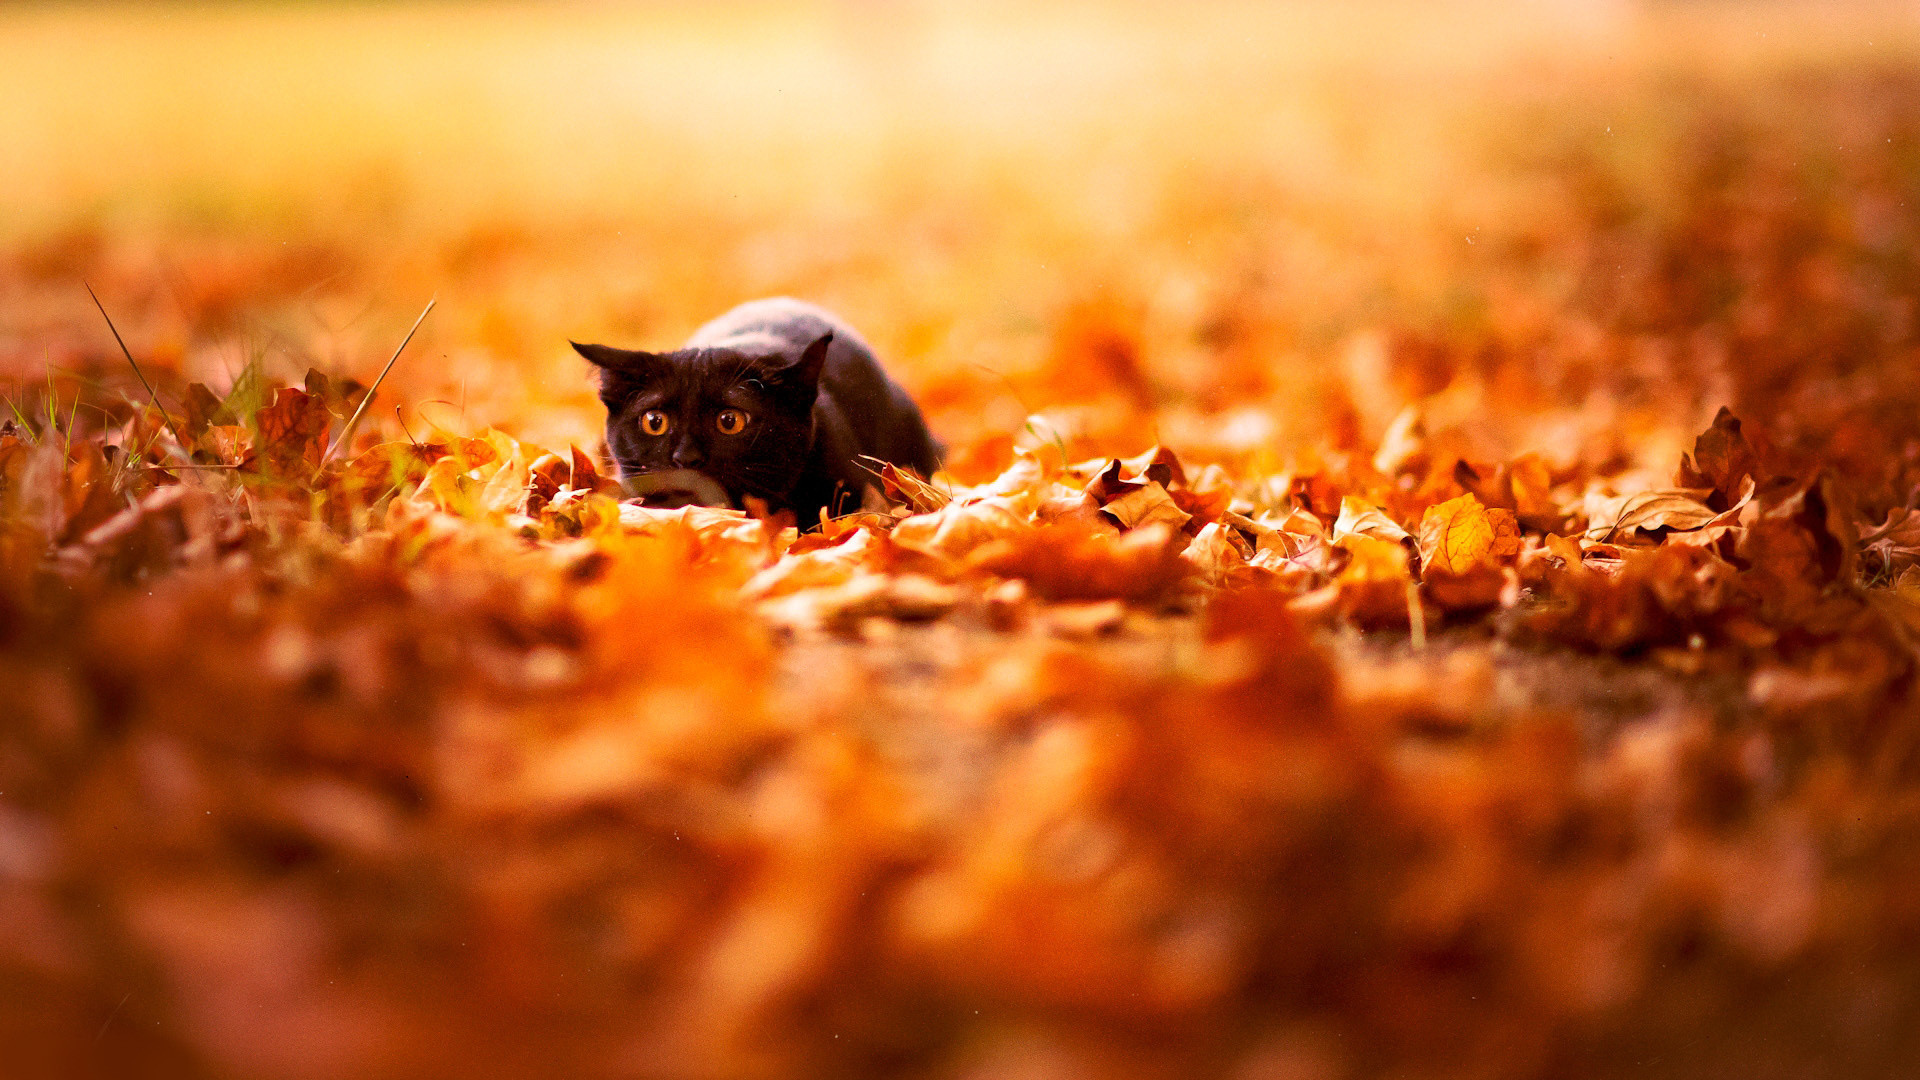 Res: 1920x1080, Cat on Fall Leaves Wallpaper for iPhone Wallpaper